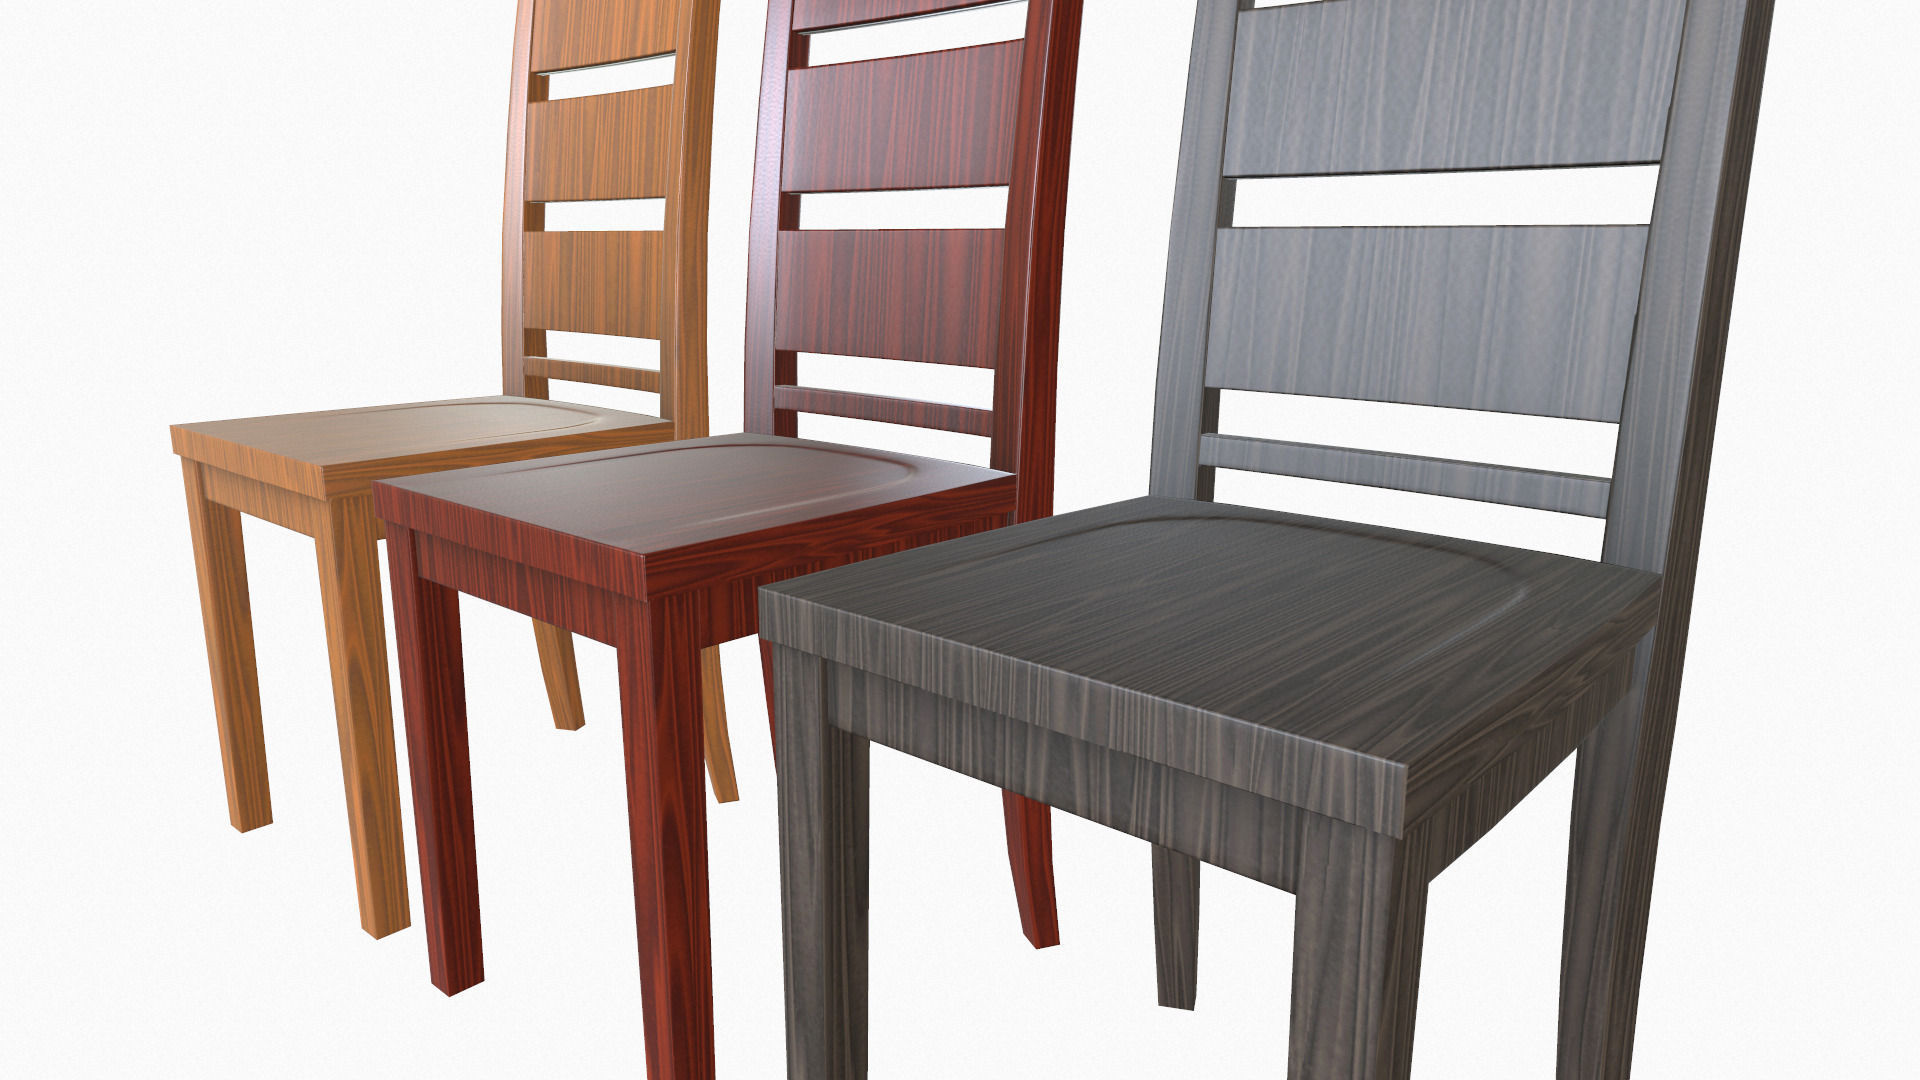 Simple wooden dining chairs -  Simple Wooden Dining Chair 3d Model Low Poly Obj Fbx 4